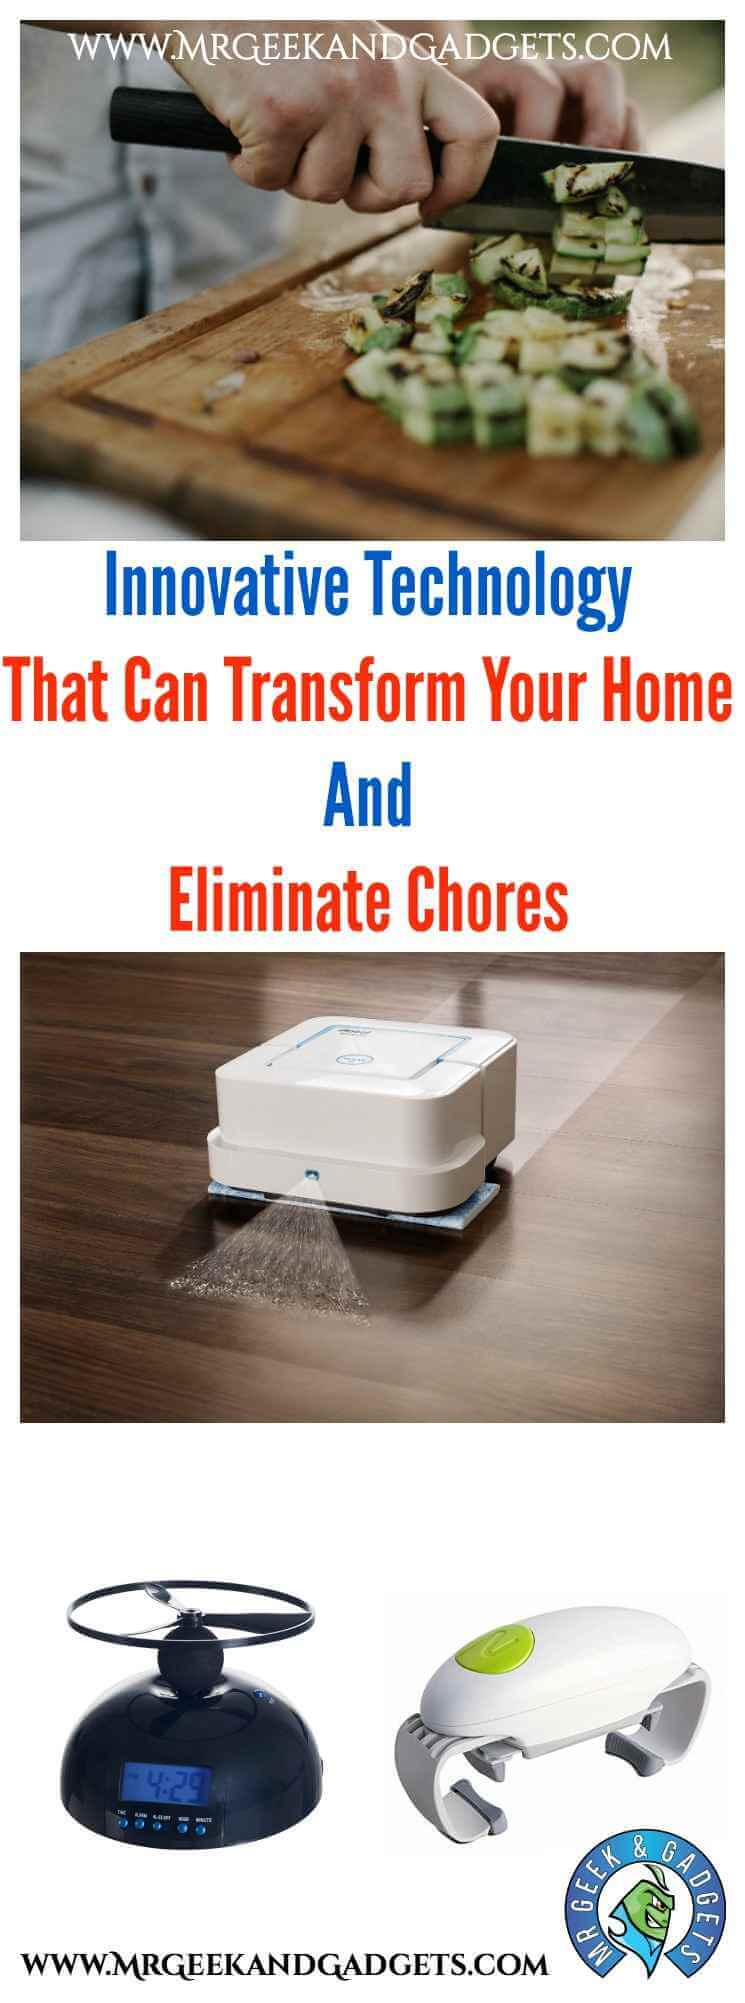 Innovative Technology That Can Transform Your Home And Eliminate Chores